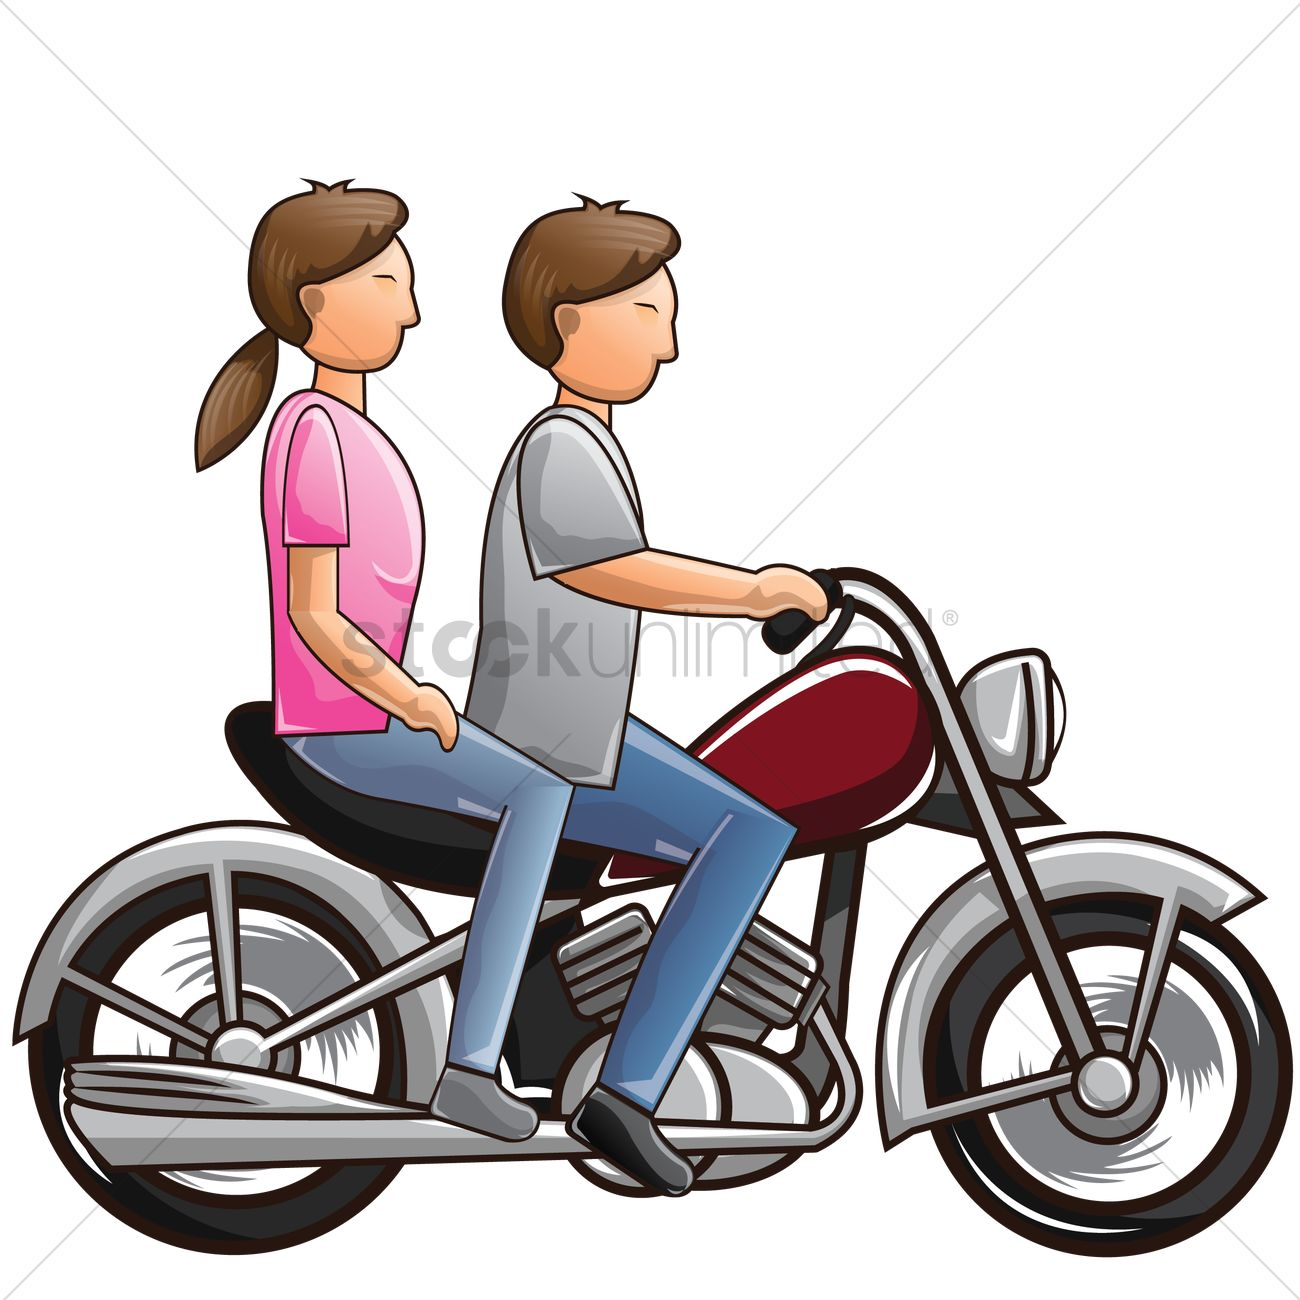 couple riding motorcycle vector image 1566211 stockunlimited rh stockunlimited com motorcycle vector art motorcycle vector bundle commercial license